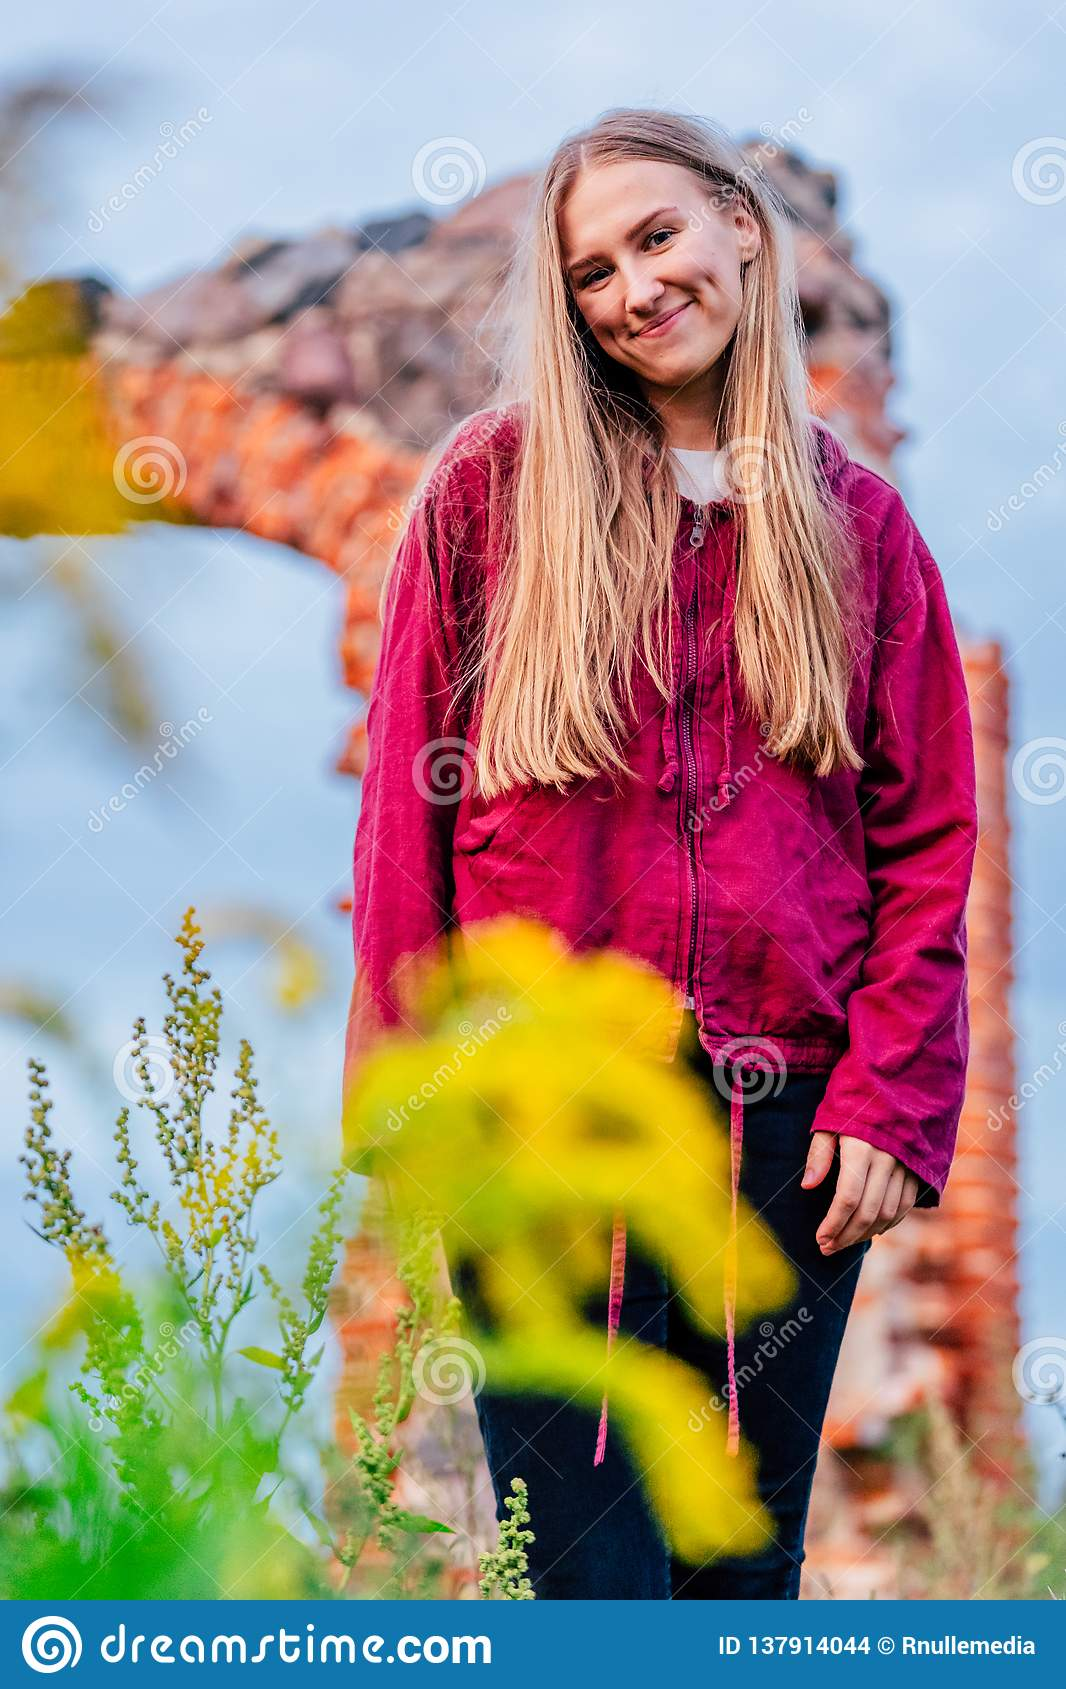 Brunette Female Fashion Model in Countryside Environment with Purple Sweater and Dark Blue Jeans - Sunny Autumn Day